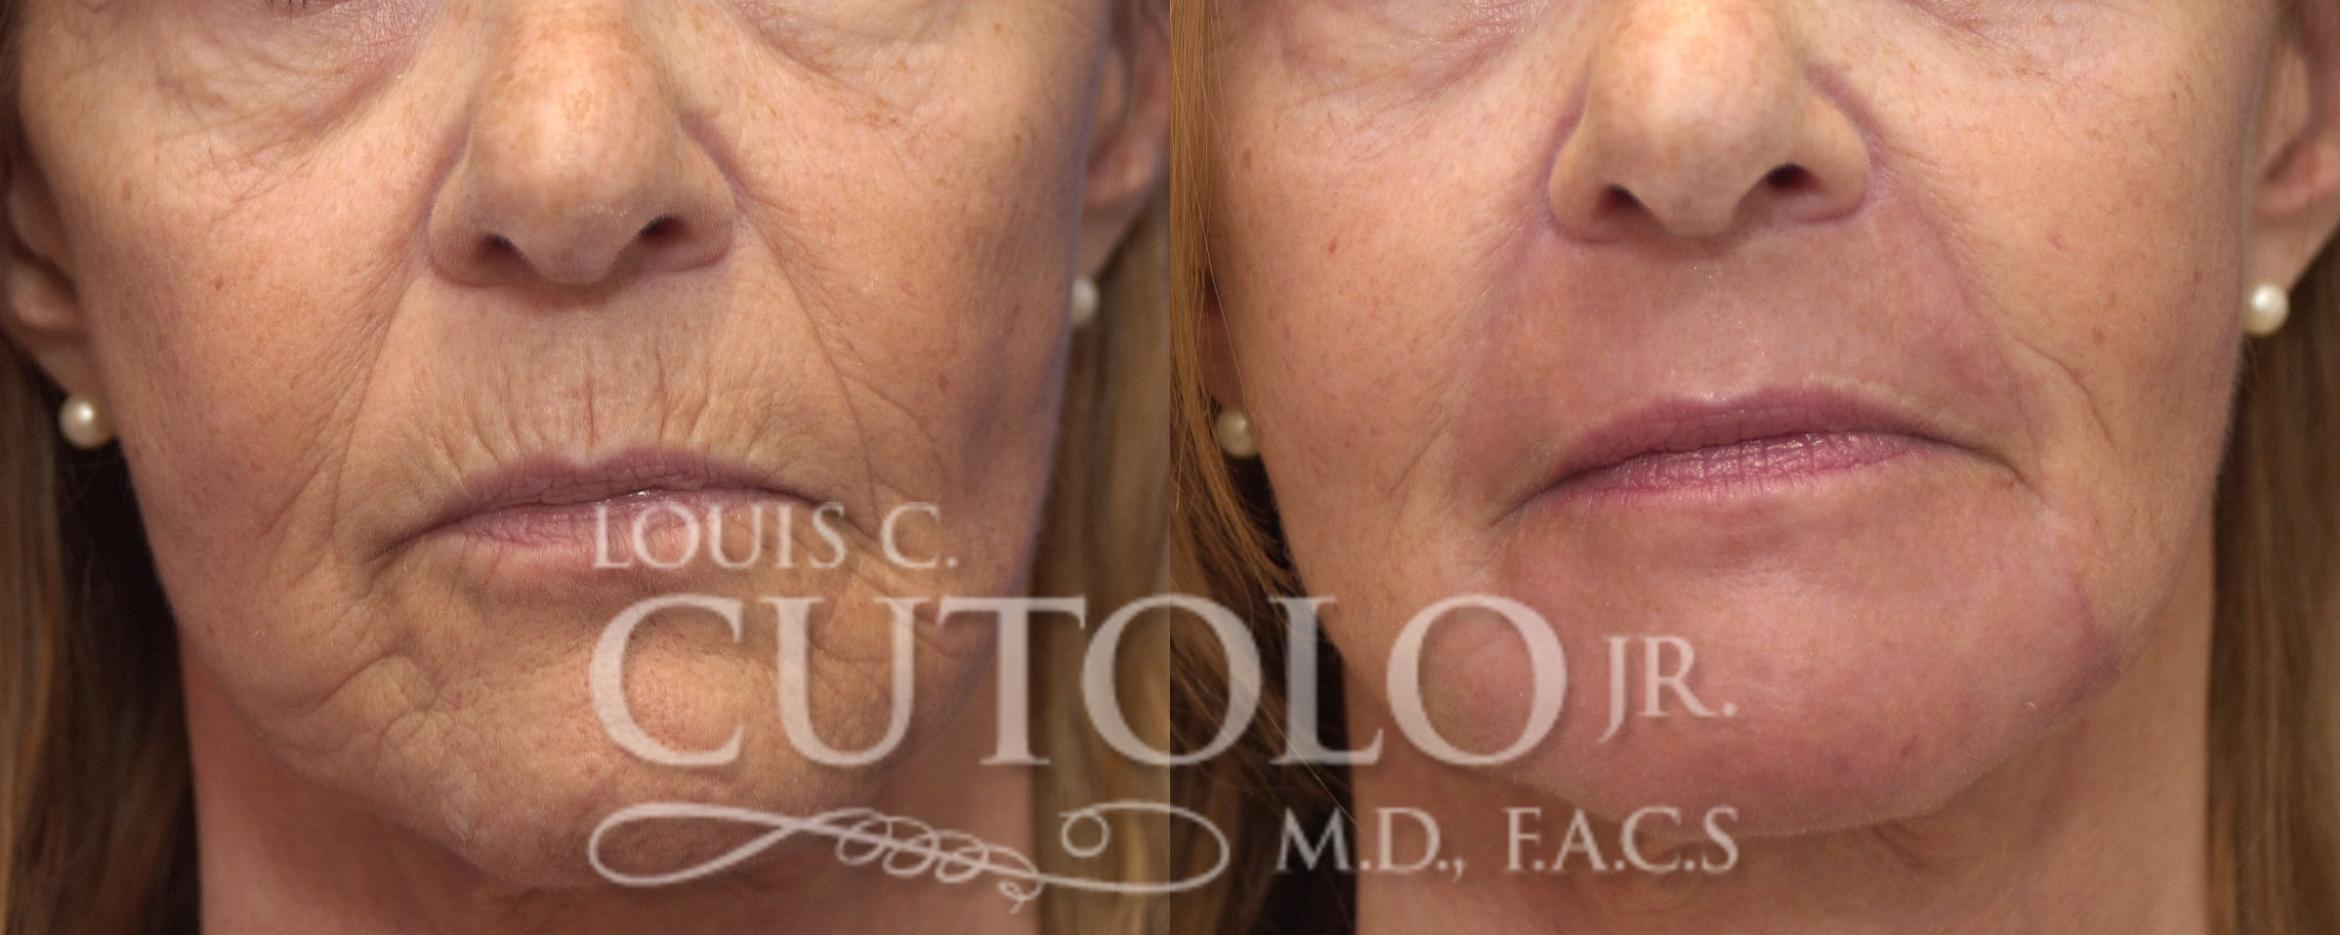 Laser Skin Resurfacing Before & After Photo | Staten Island, NY | Louis C. Cotolo, Jr., M.D., F.A.C.S.